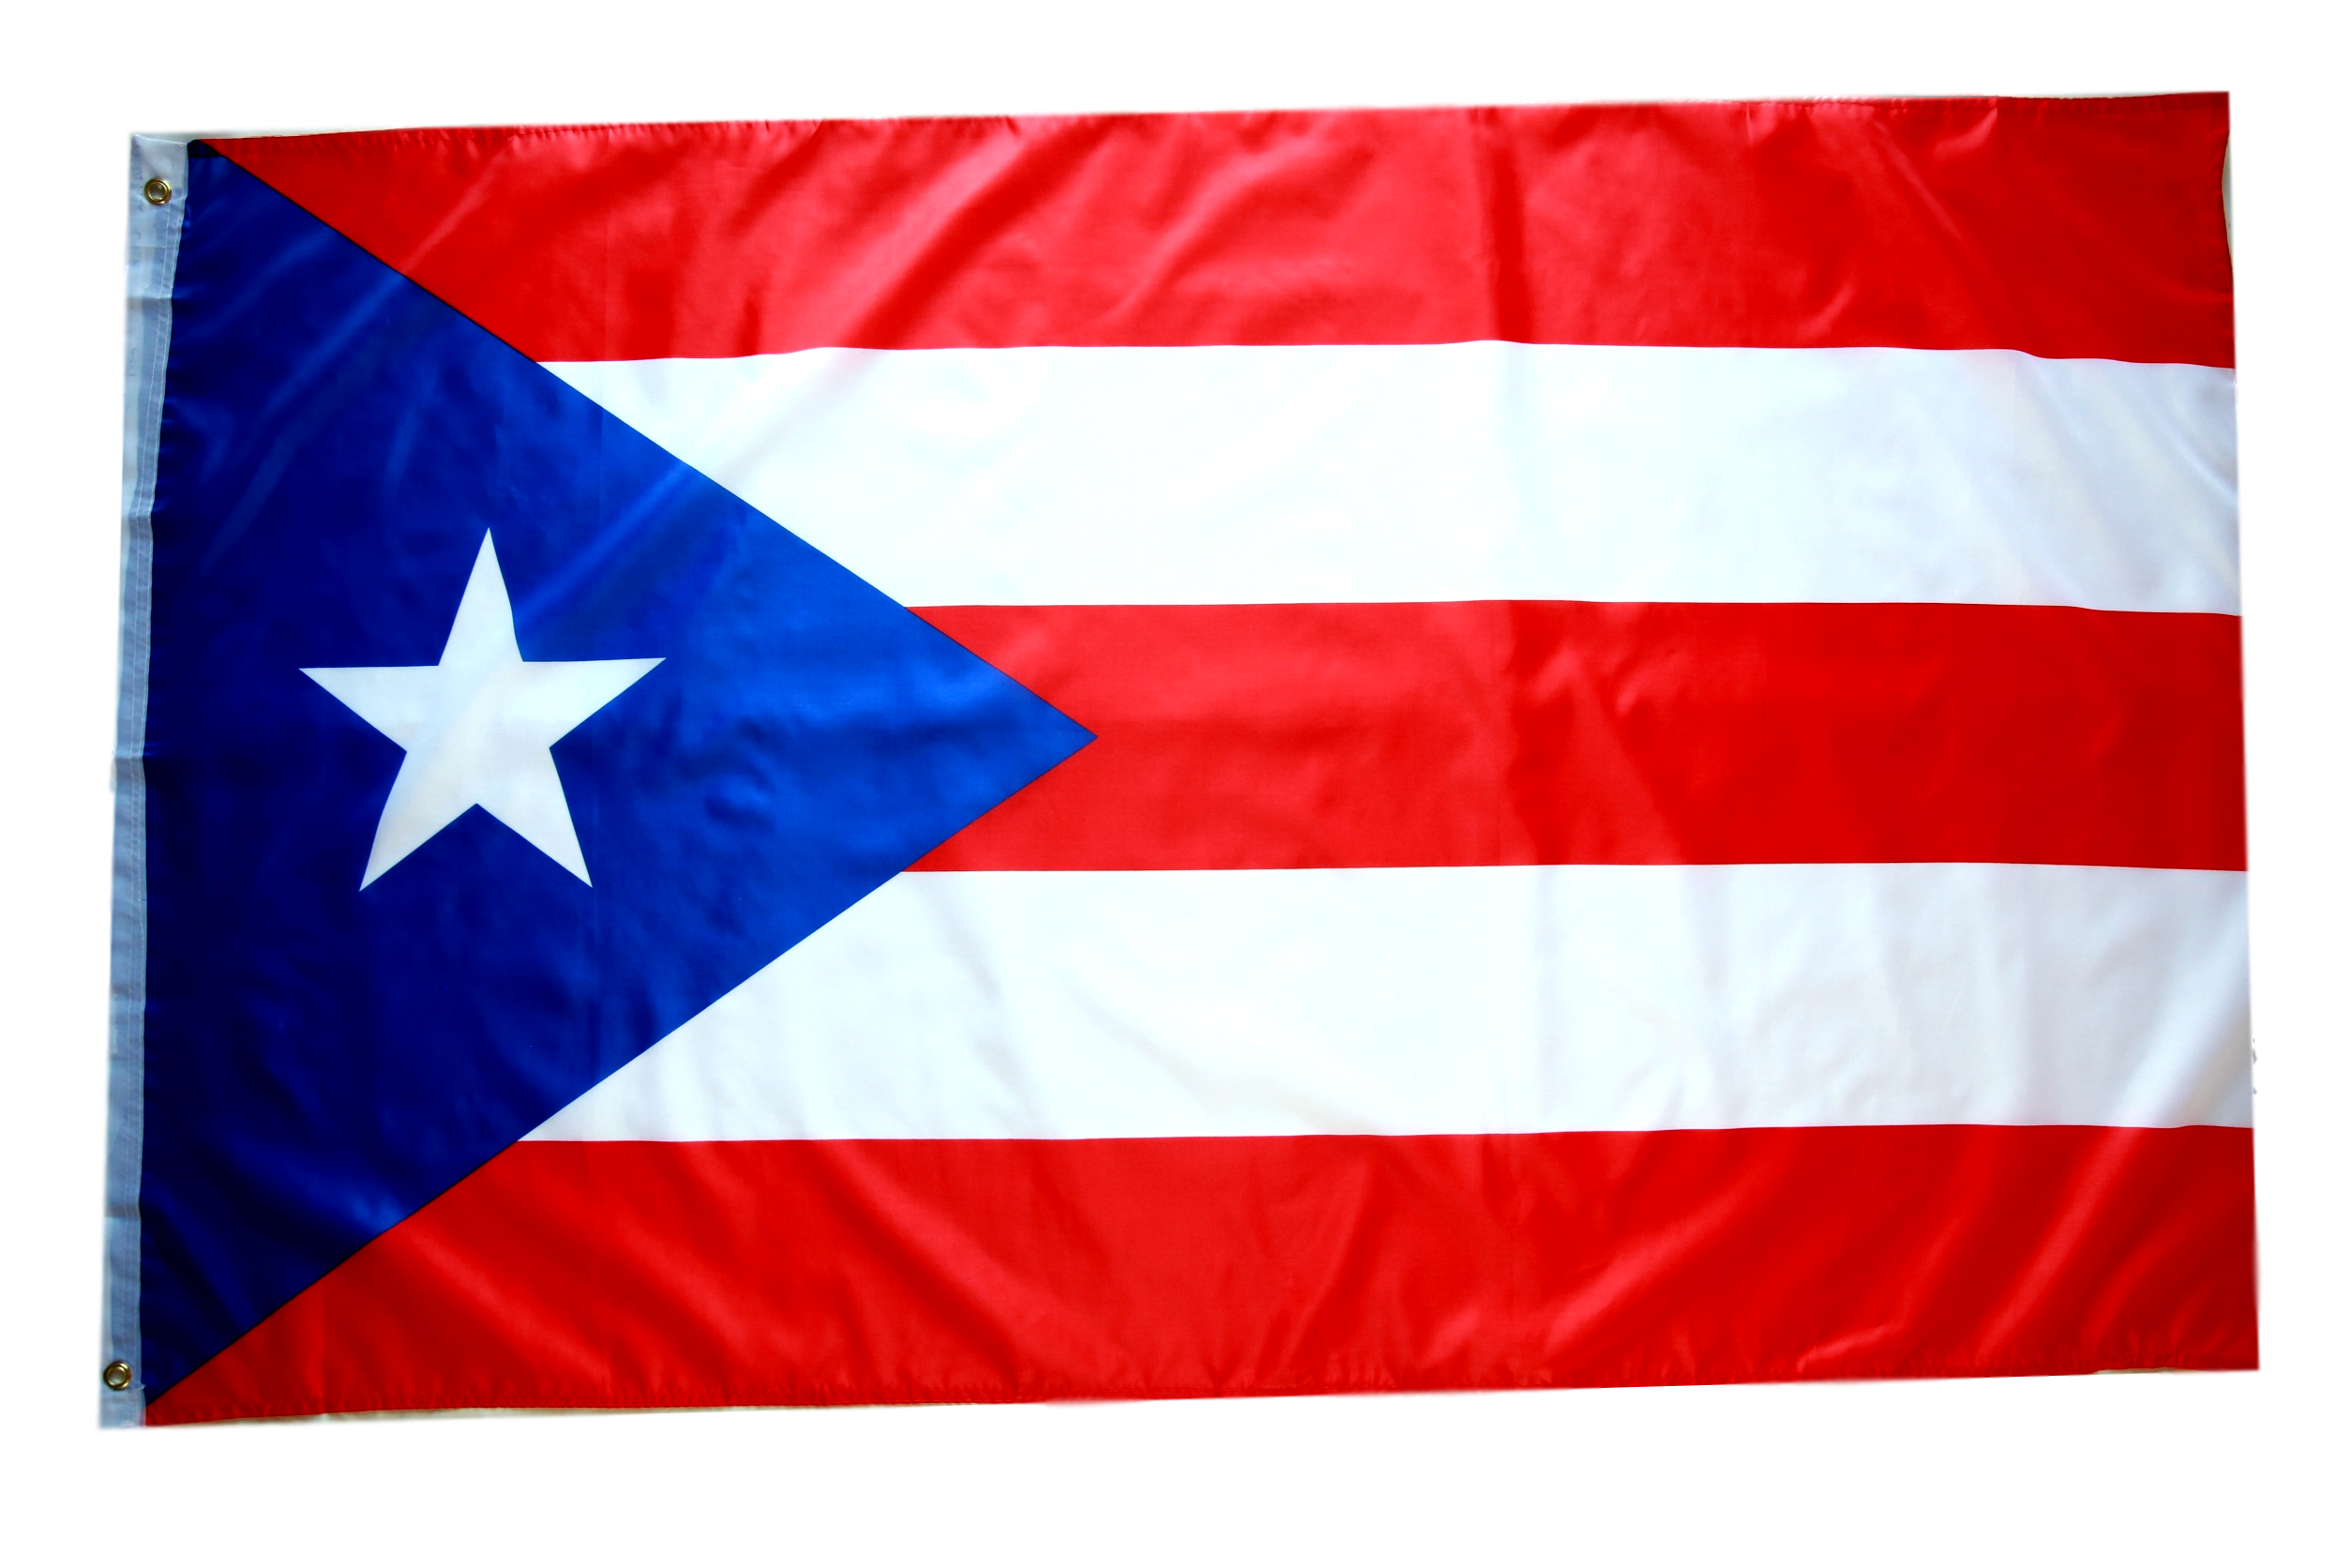 Puerto rican flag of puerto rico 3 x 5 feet with brass grommets indoor outdoor united